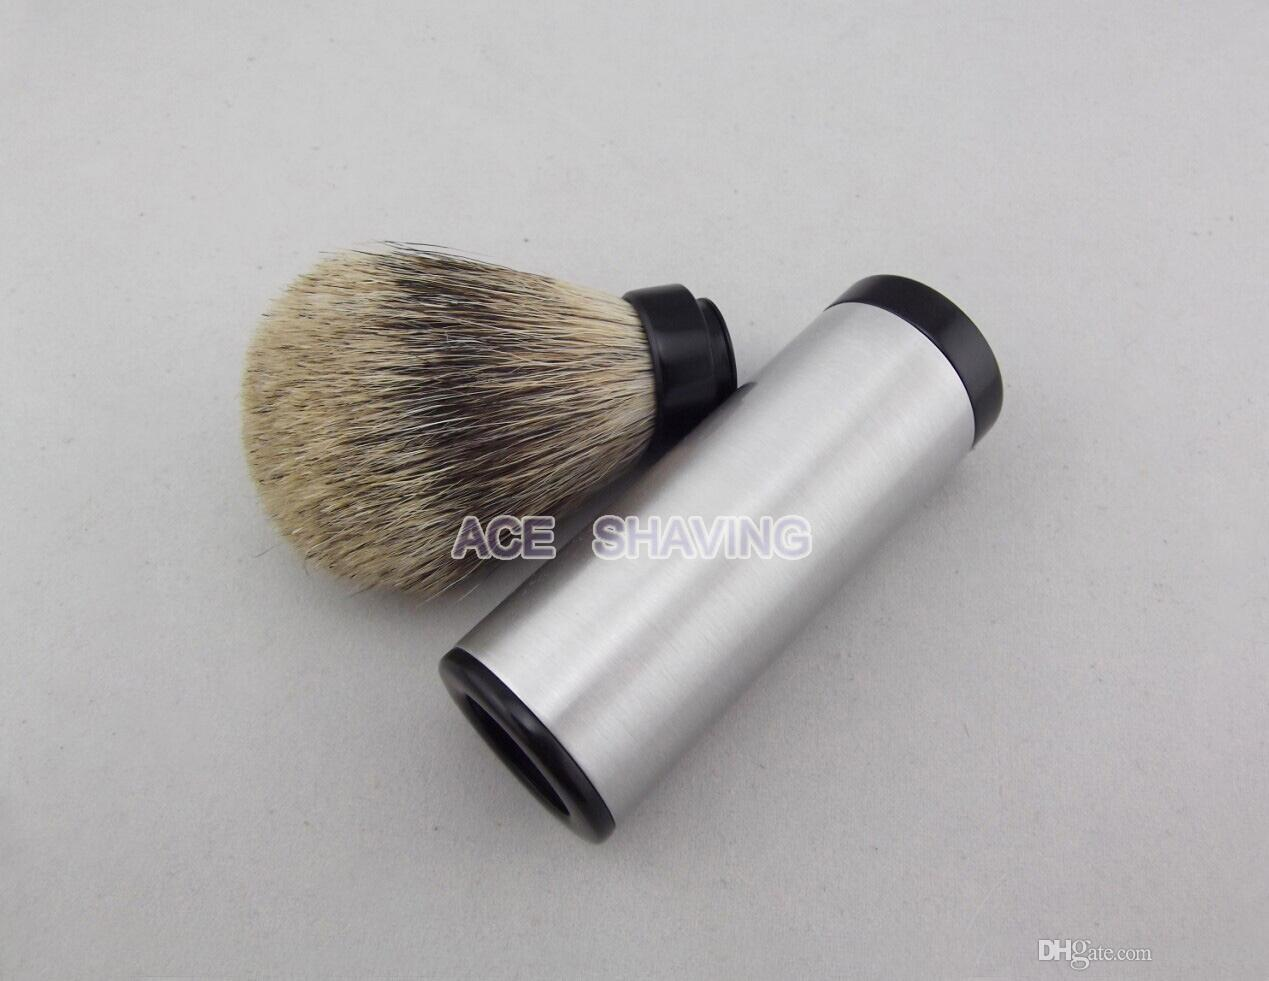 Stainless 100% Aluminium Alloy Handle Best Badger Hair Travel Shaving Brush Man Gift